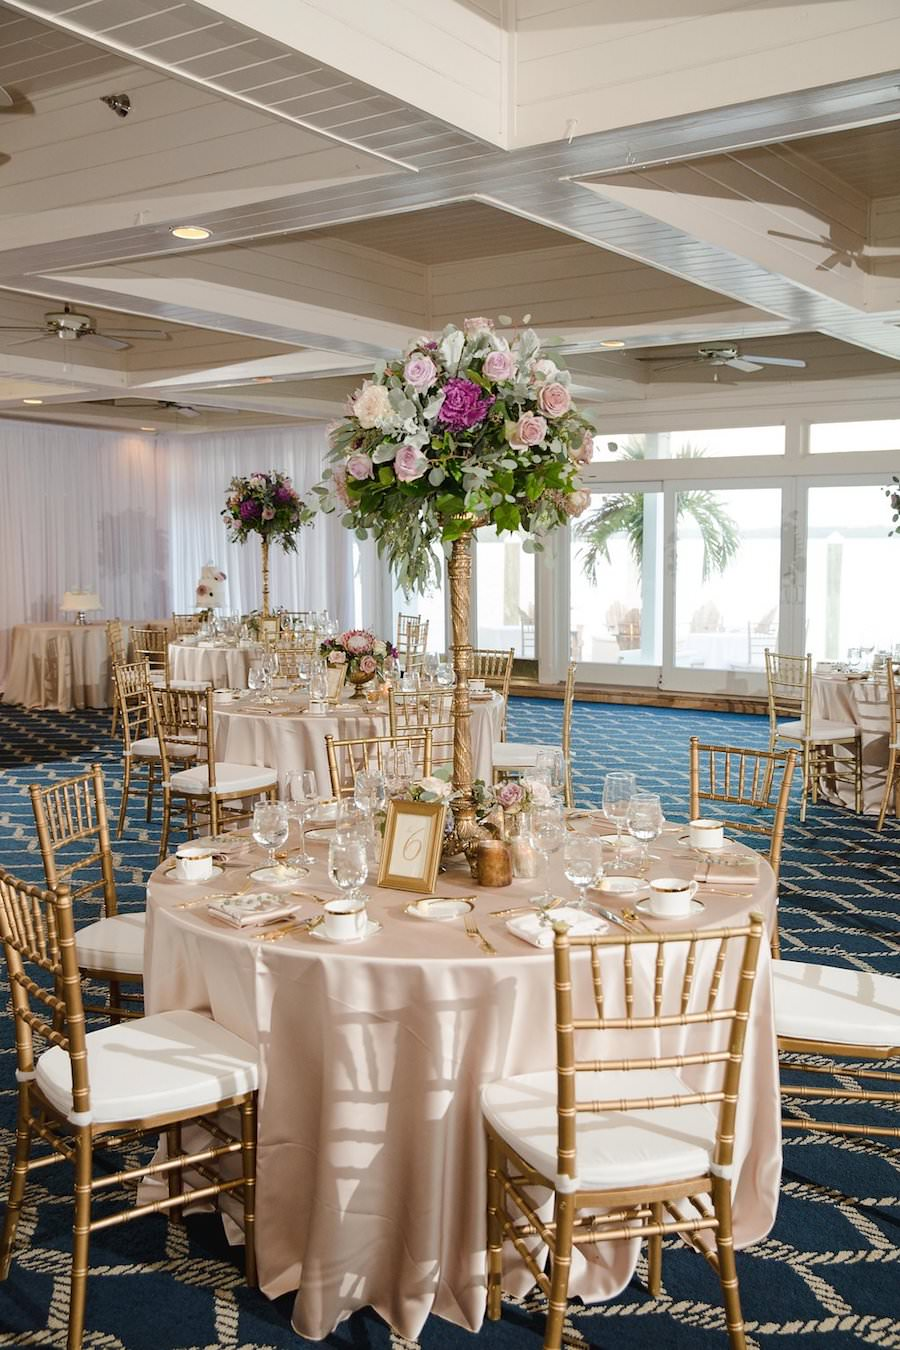 Tall Blush Pink Rose Centerpieces with Greenery, Satin Linens and Gold Chiavari Chairs | Elegant Traditional Gold Wedding Reception Decor | Clearwater Beach Wedding Planner Parties a la Carte